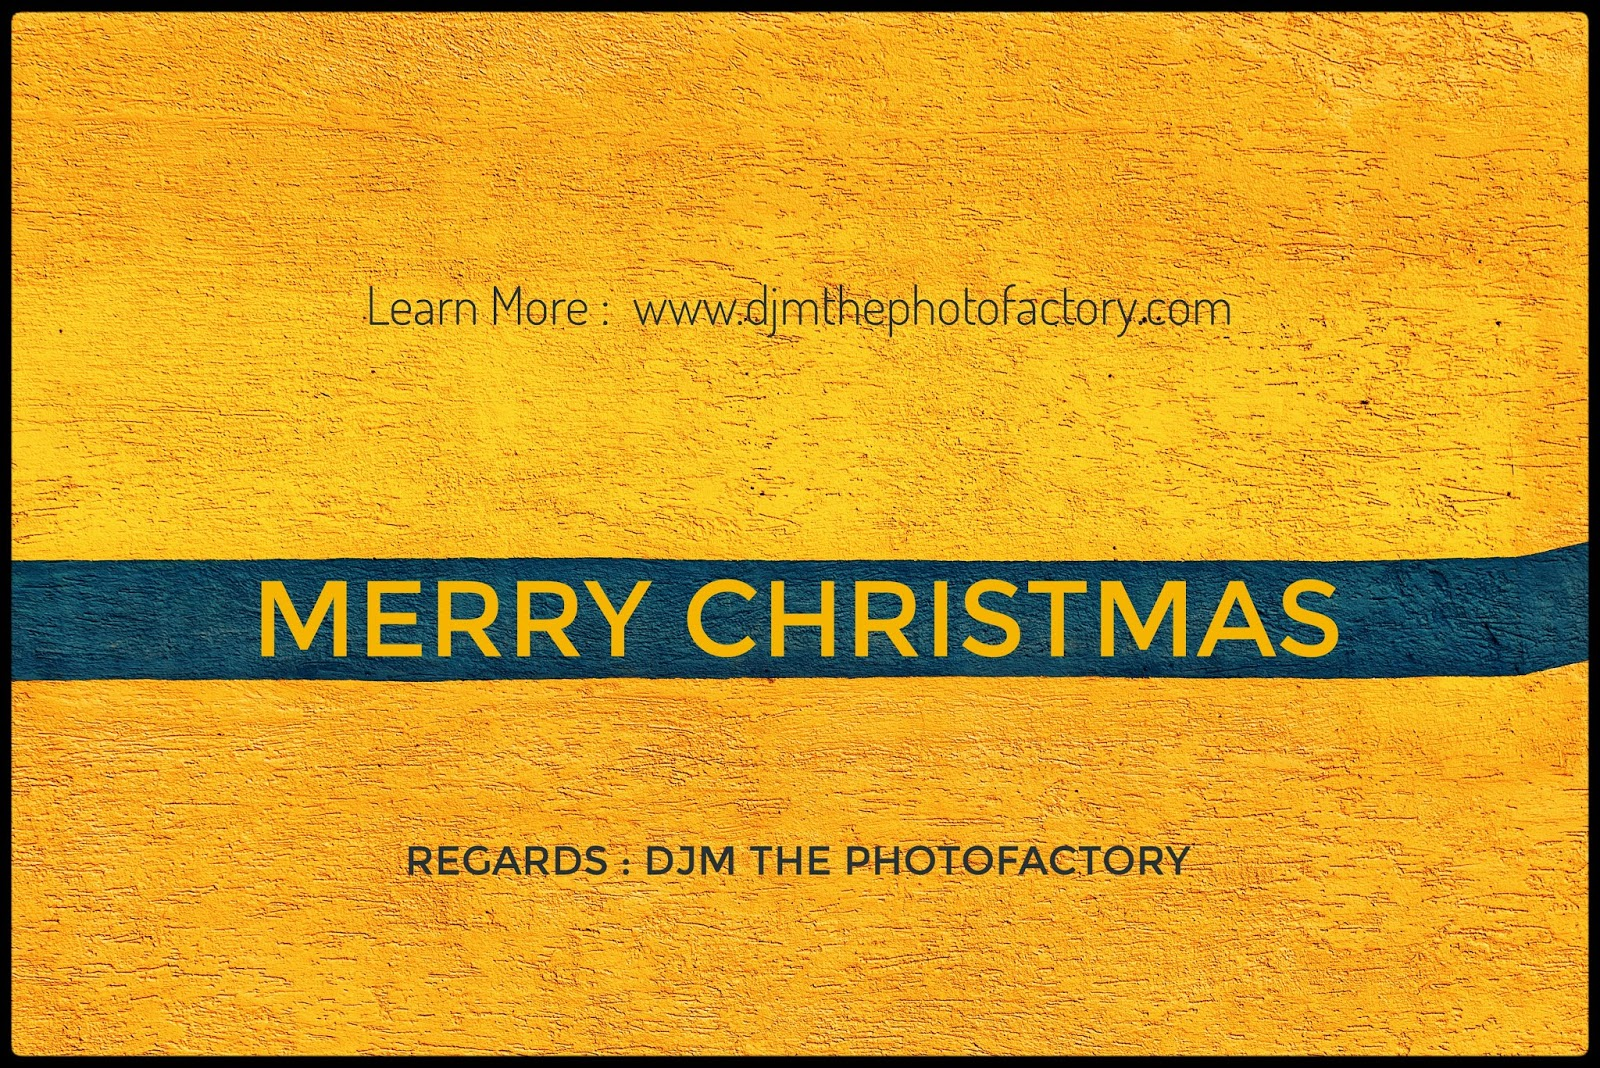 Happy Christmas Day, Merry Christmas 2019 Wishes Images, Quotes, SMS, Whatsapp Messages, Photos, Status, Pics